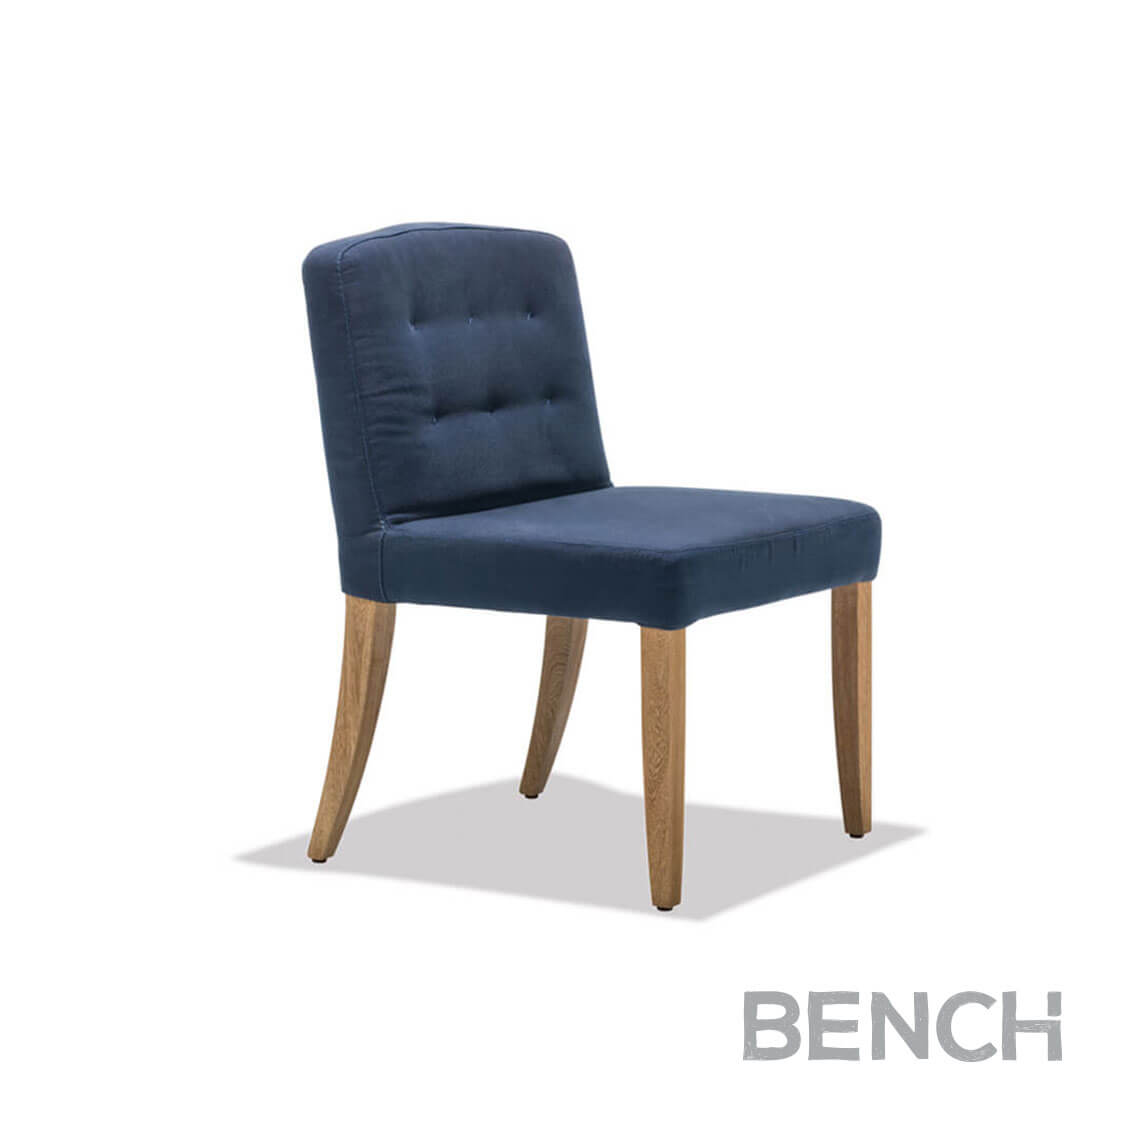 Latte Armless Chair | Bench